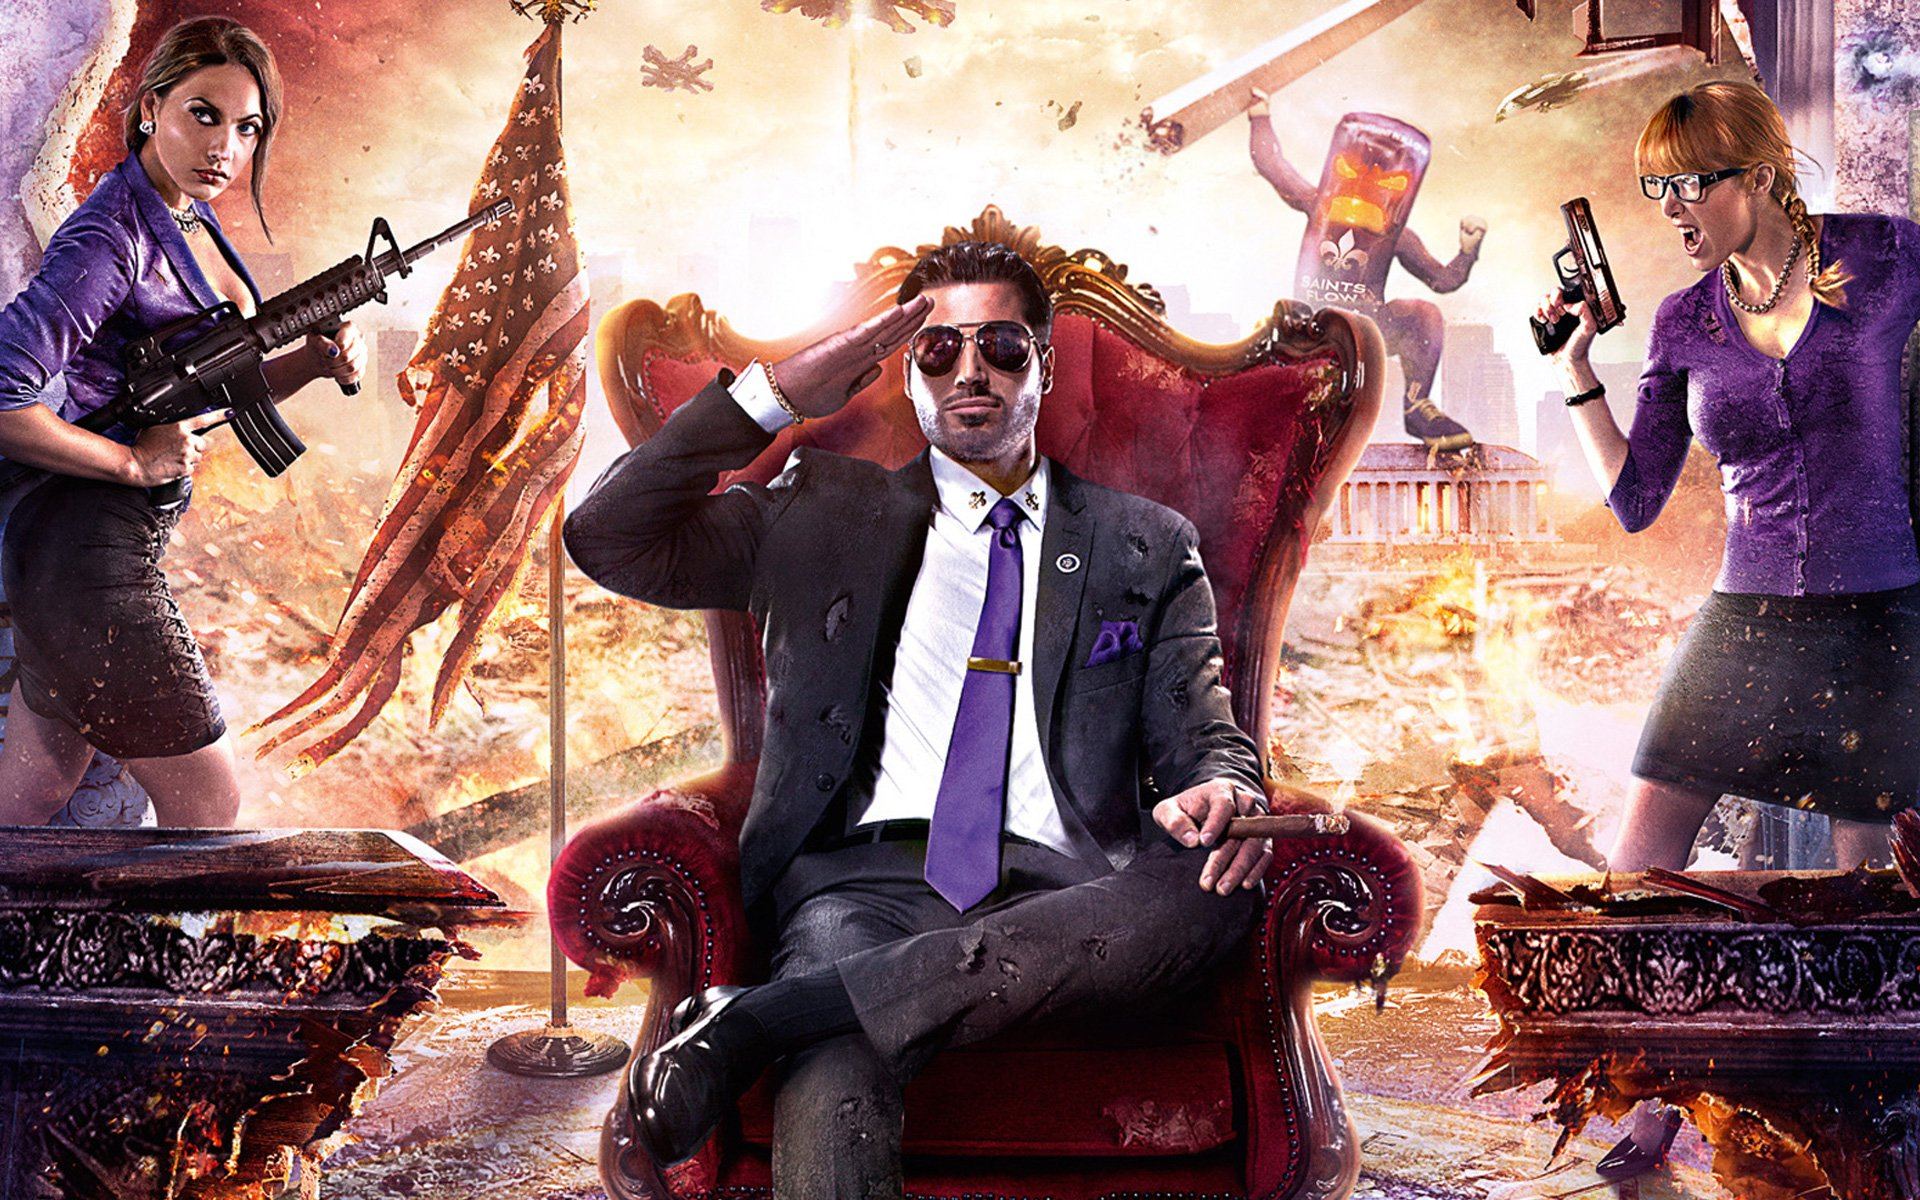 97 saints row hd wallpapers background images wallpaper abyss saint row hd wallpaper background image id419806 voltagebd Images